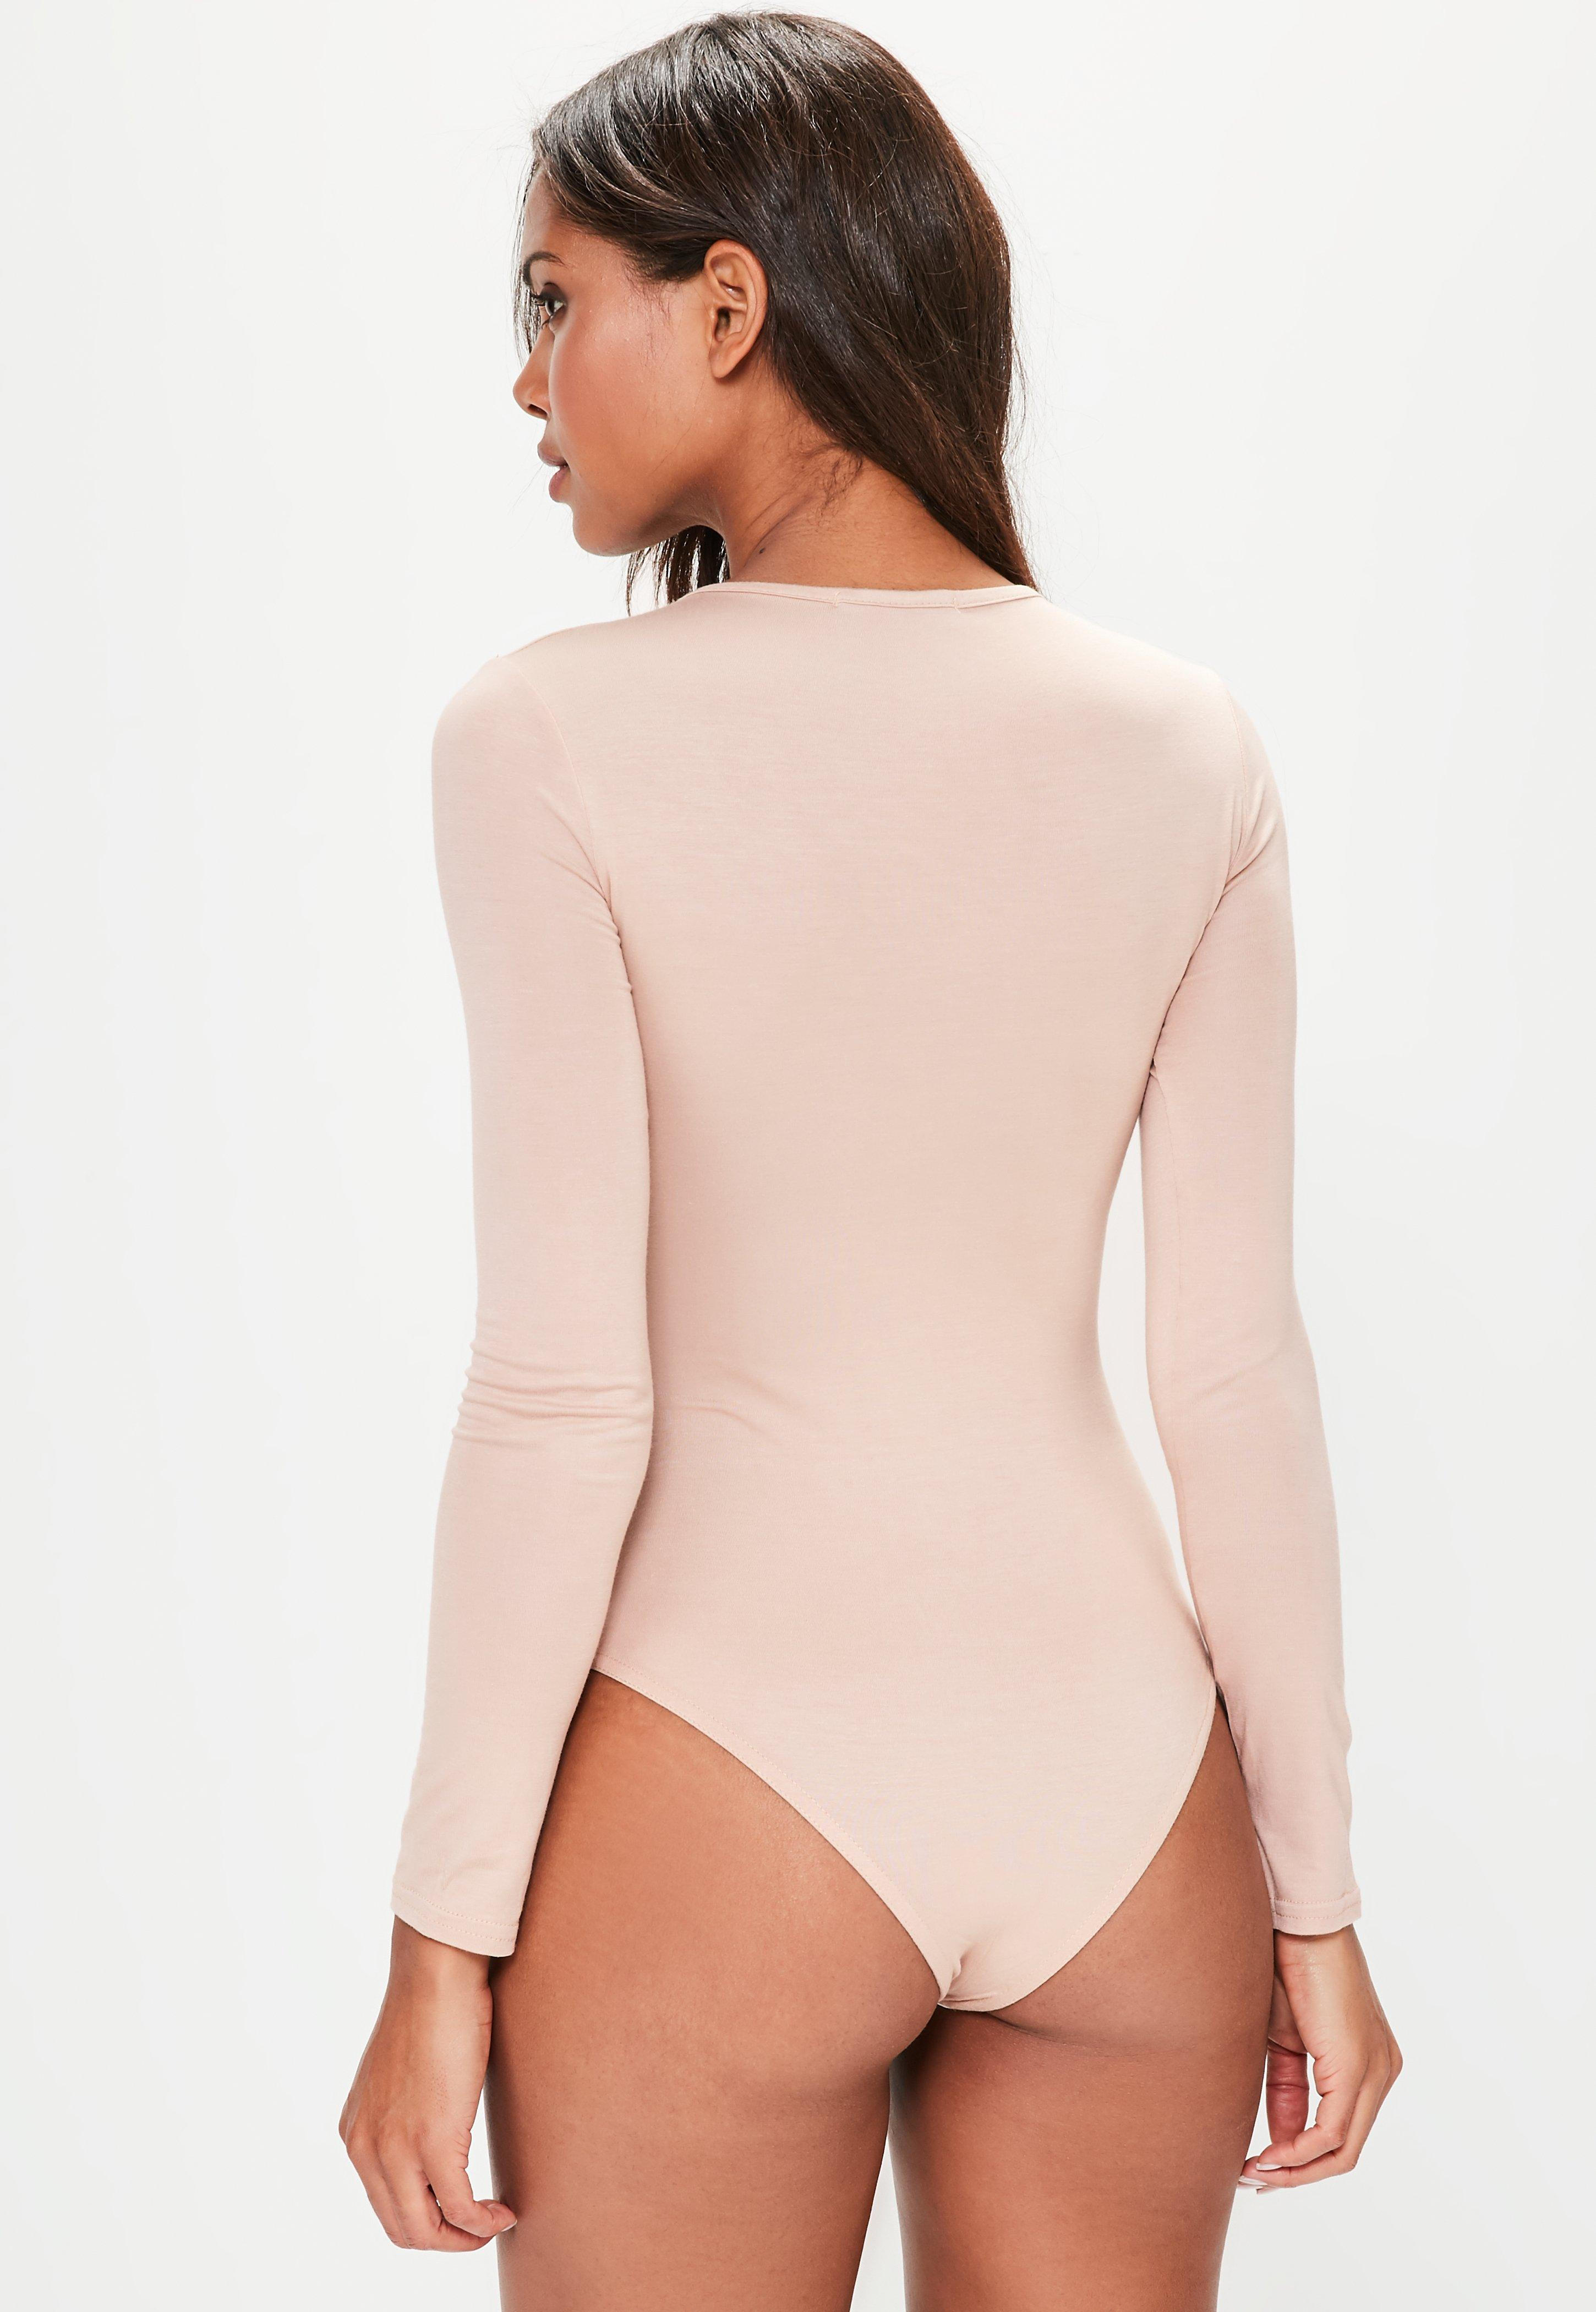 Nude Crew Neck Long Sleeve Jersey Bodysuit. $20.00. Previous Next